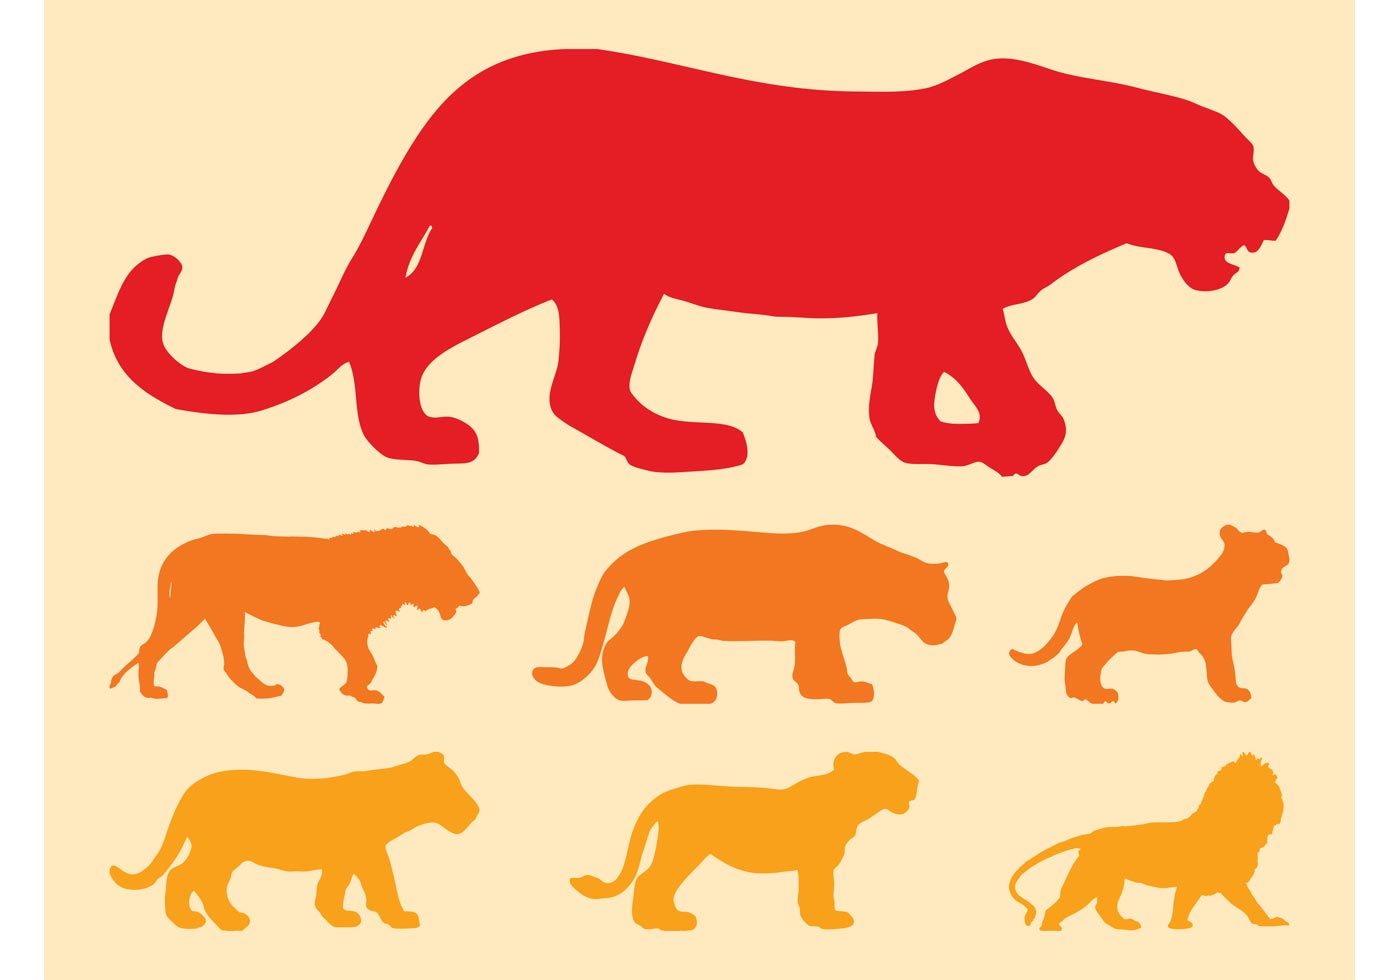 Big Cats Silhouettes.